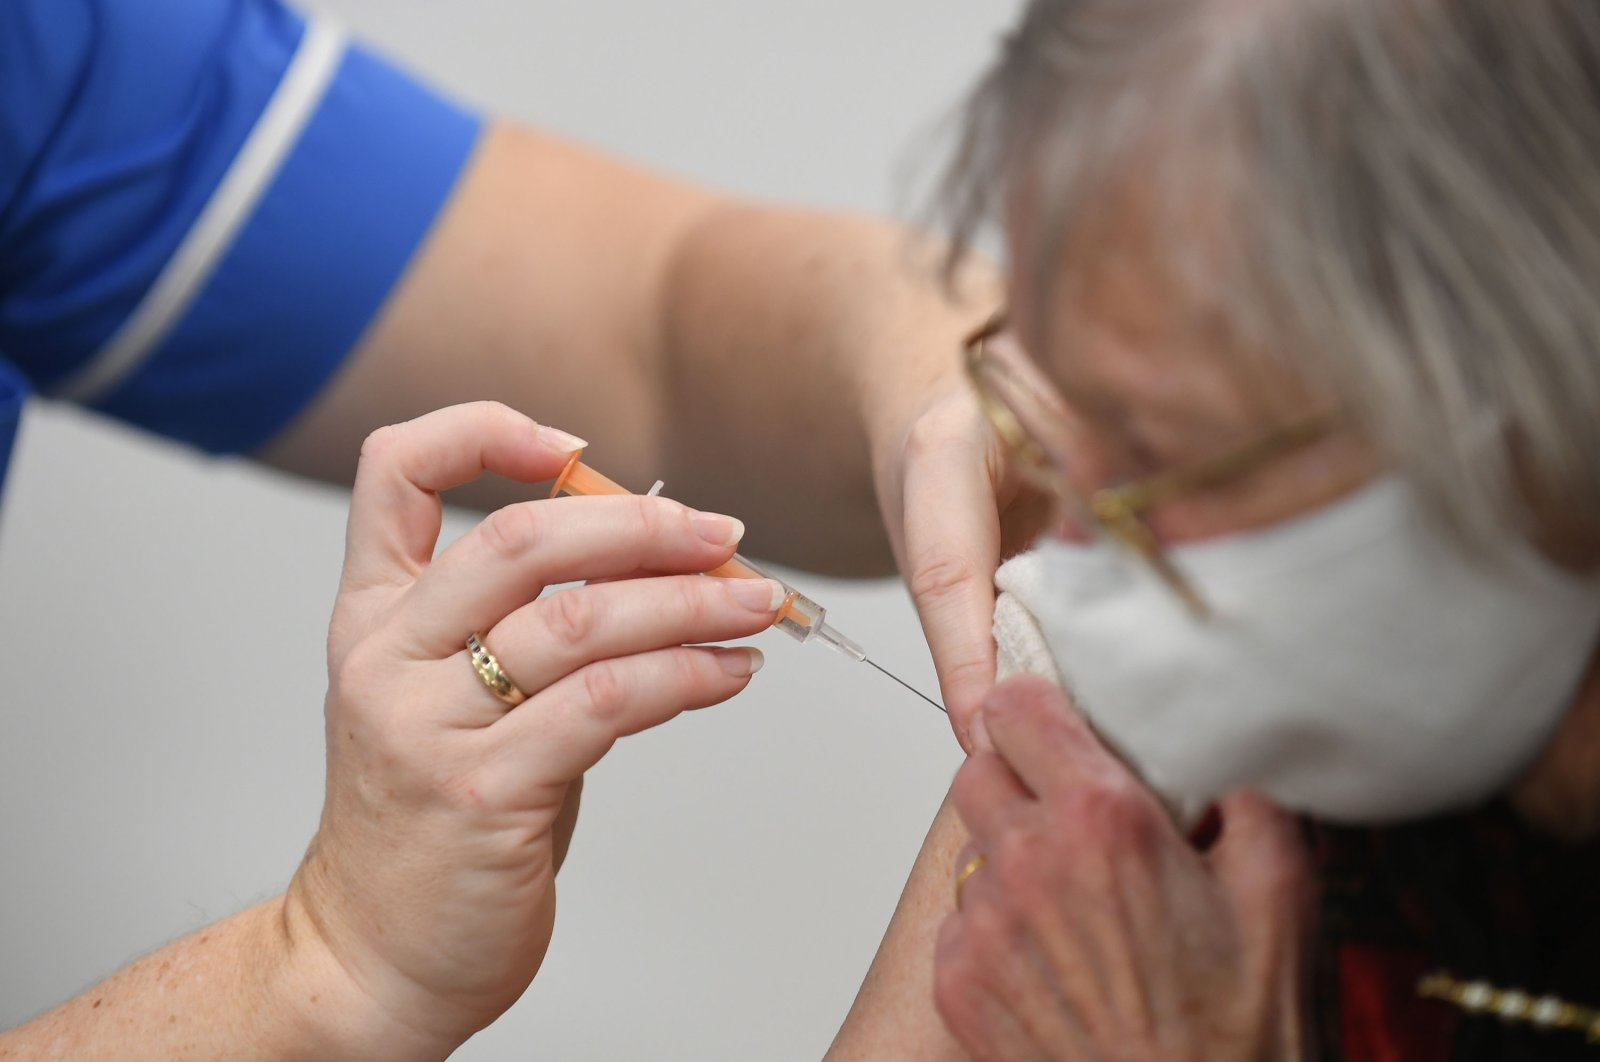 Heather Gallagher, 93, receives an injection of a COVID-19 vaccine at the National Health Service (NHS) vaccine center at Robertson House, Stevenage, England, Jan. 11, 2021. (Getty Images)